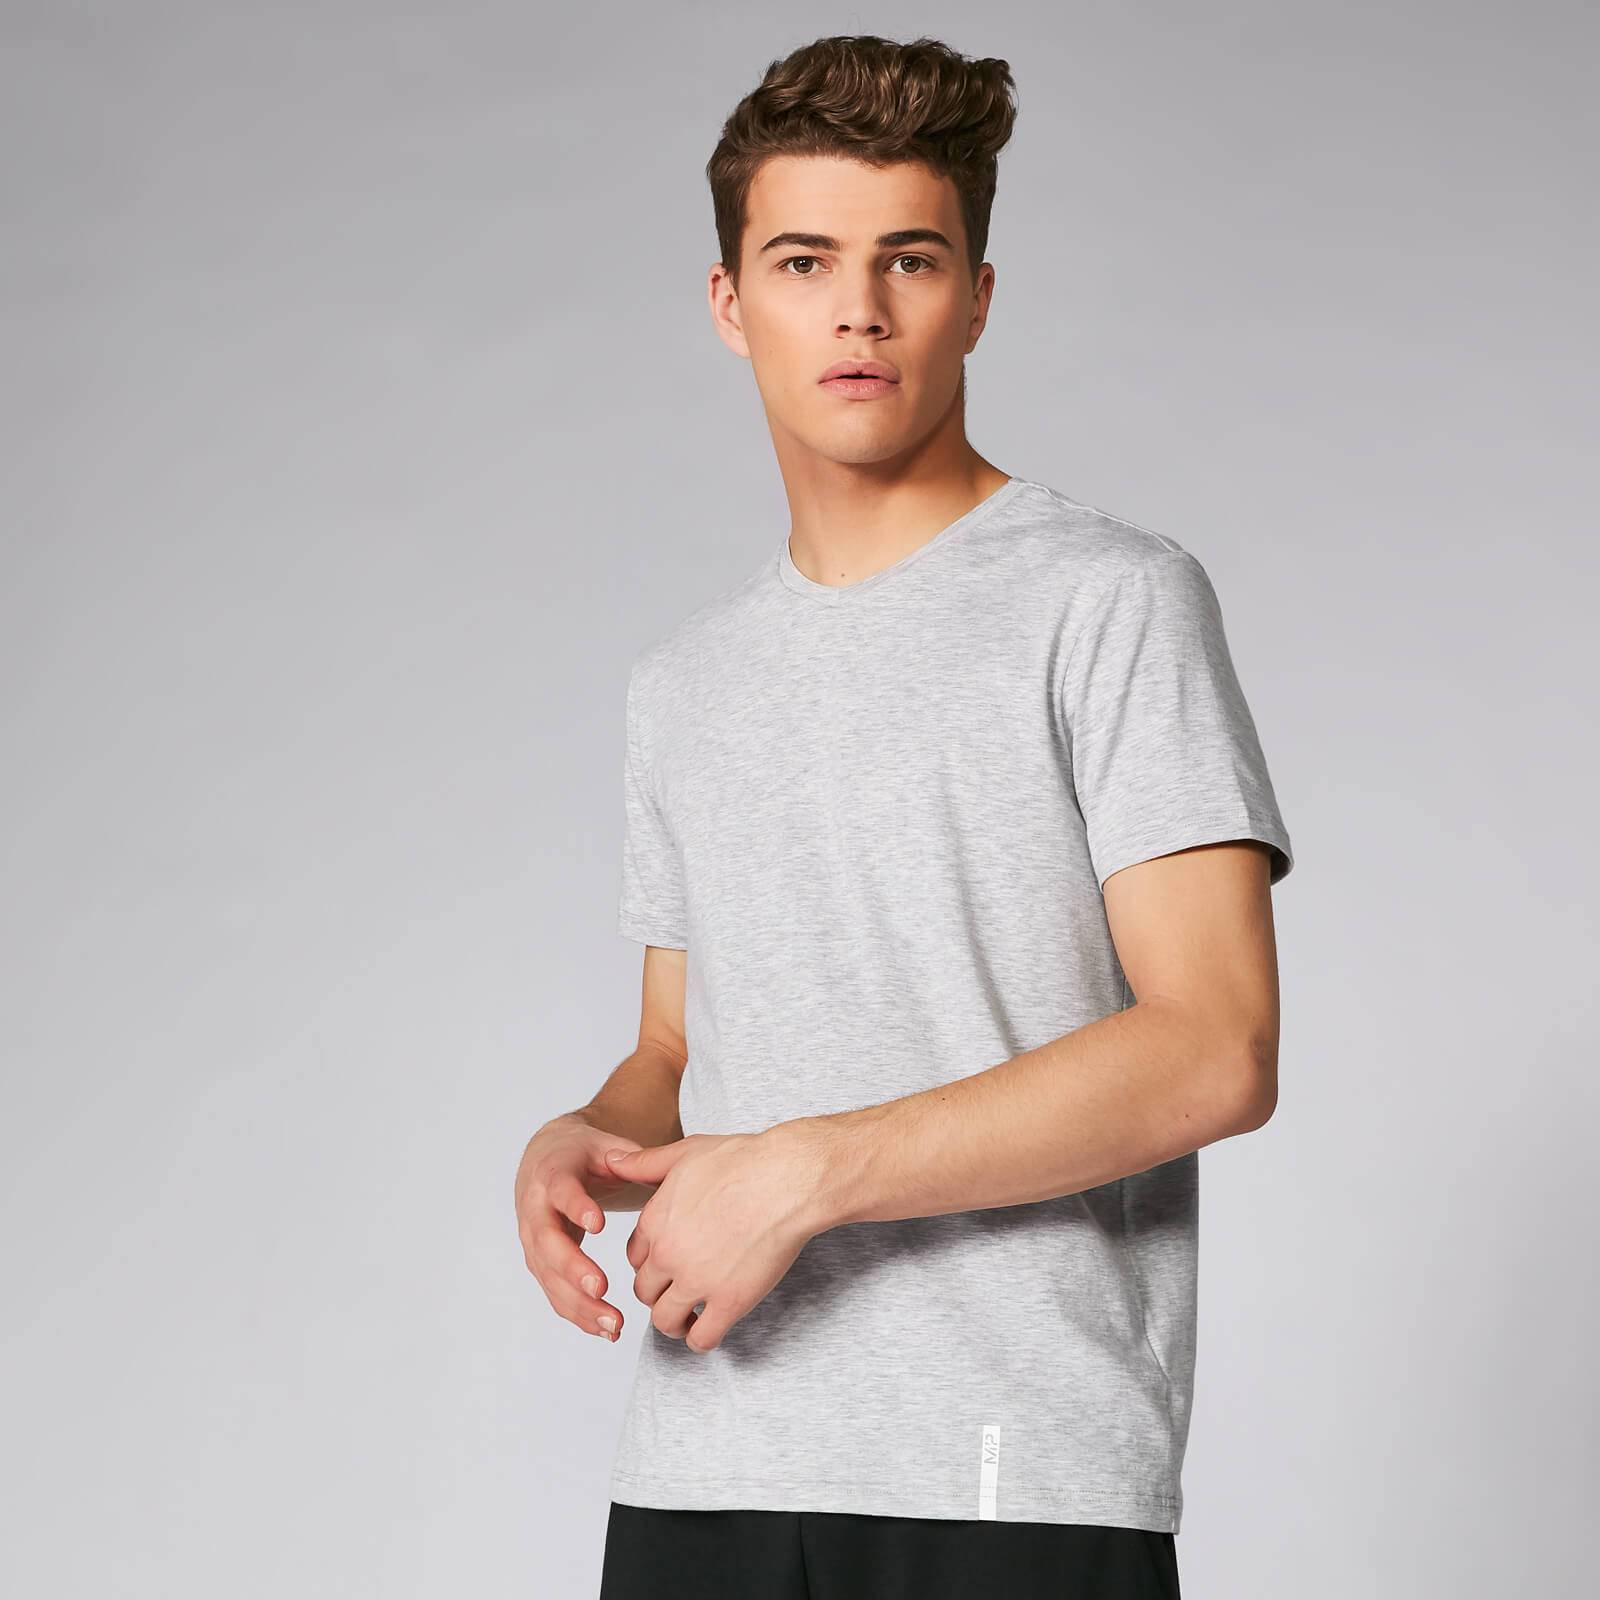 Myprotein Luxe Classic V-Neck T-Shirt - Silver - S